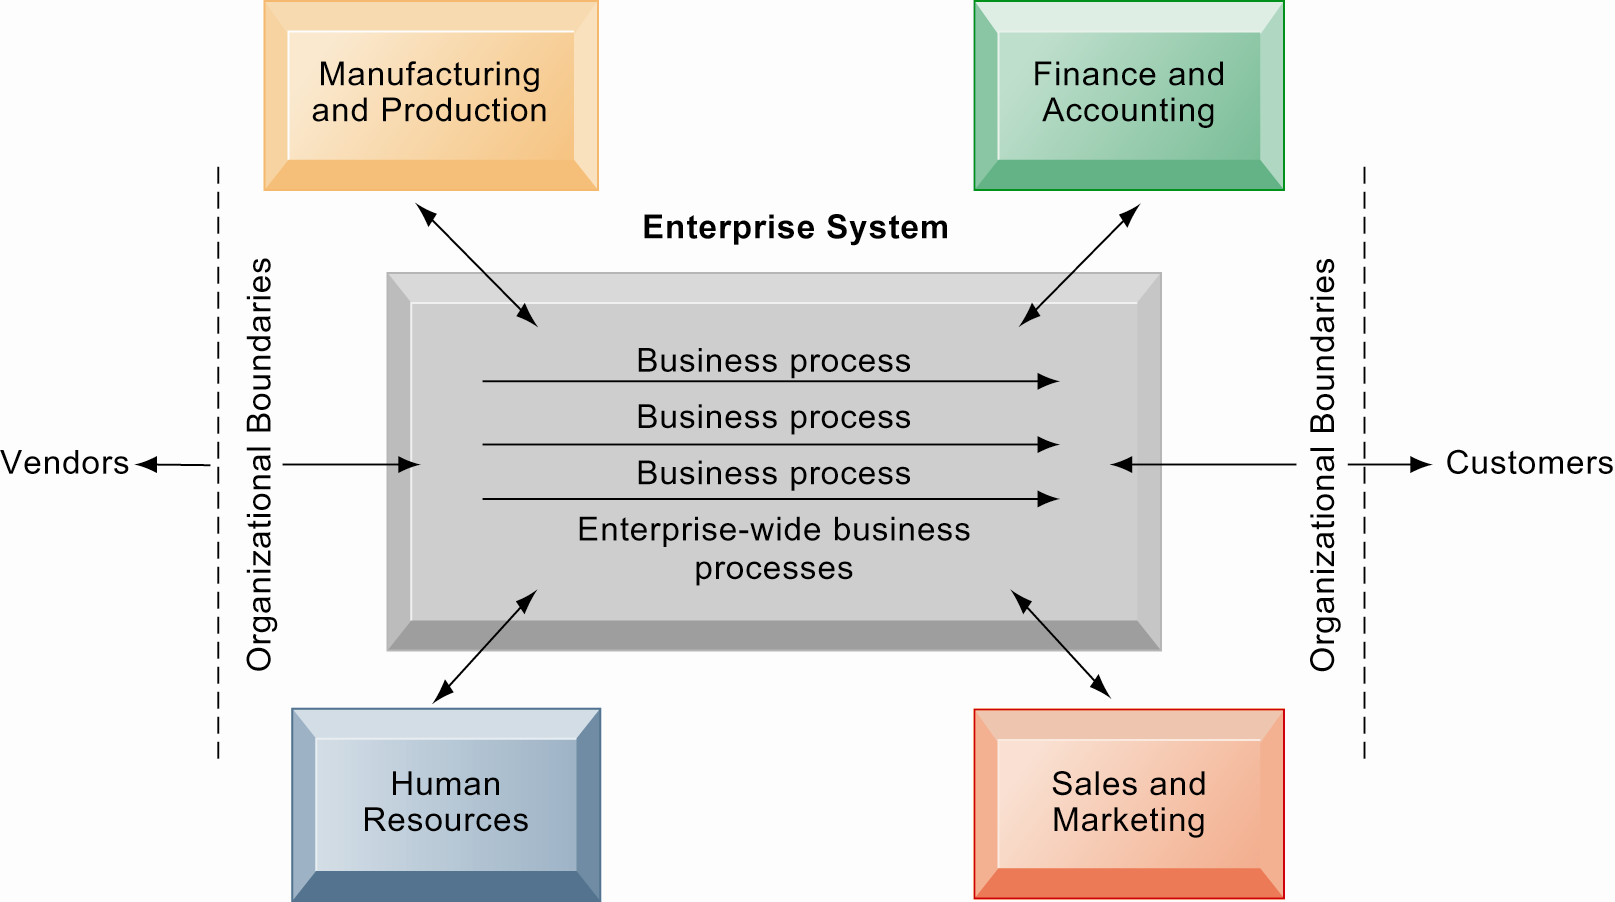 Enterprise Systems Enterprise systems integrate the key business processes of an entire firm into a single software system that enables information to flow seamlessly throughout the organization.